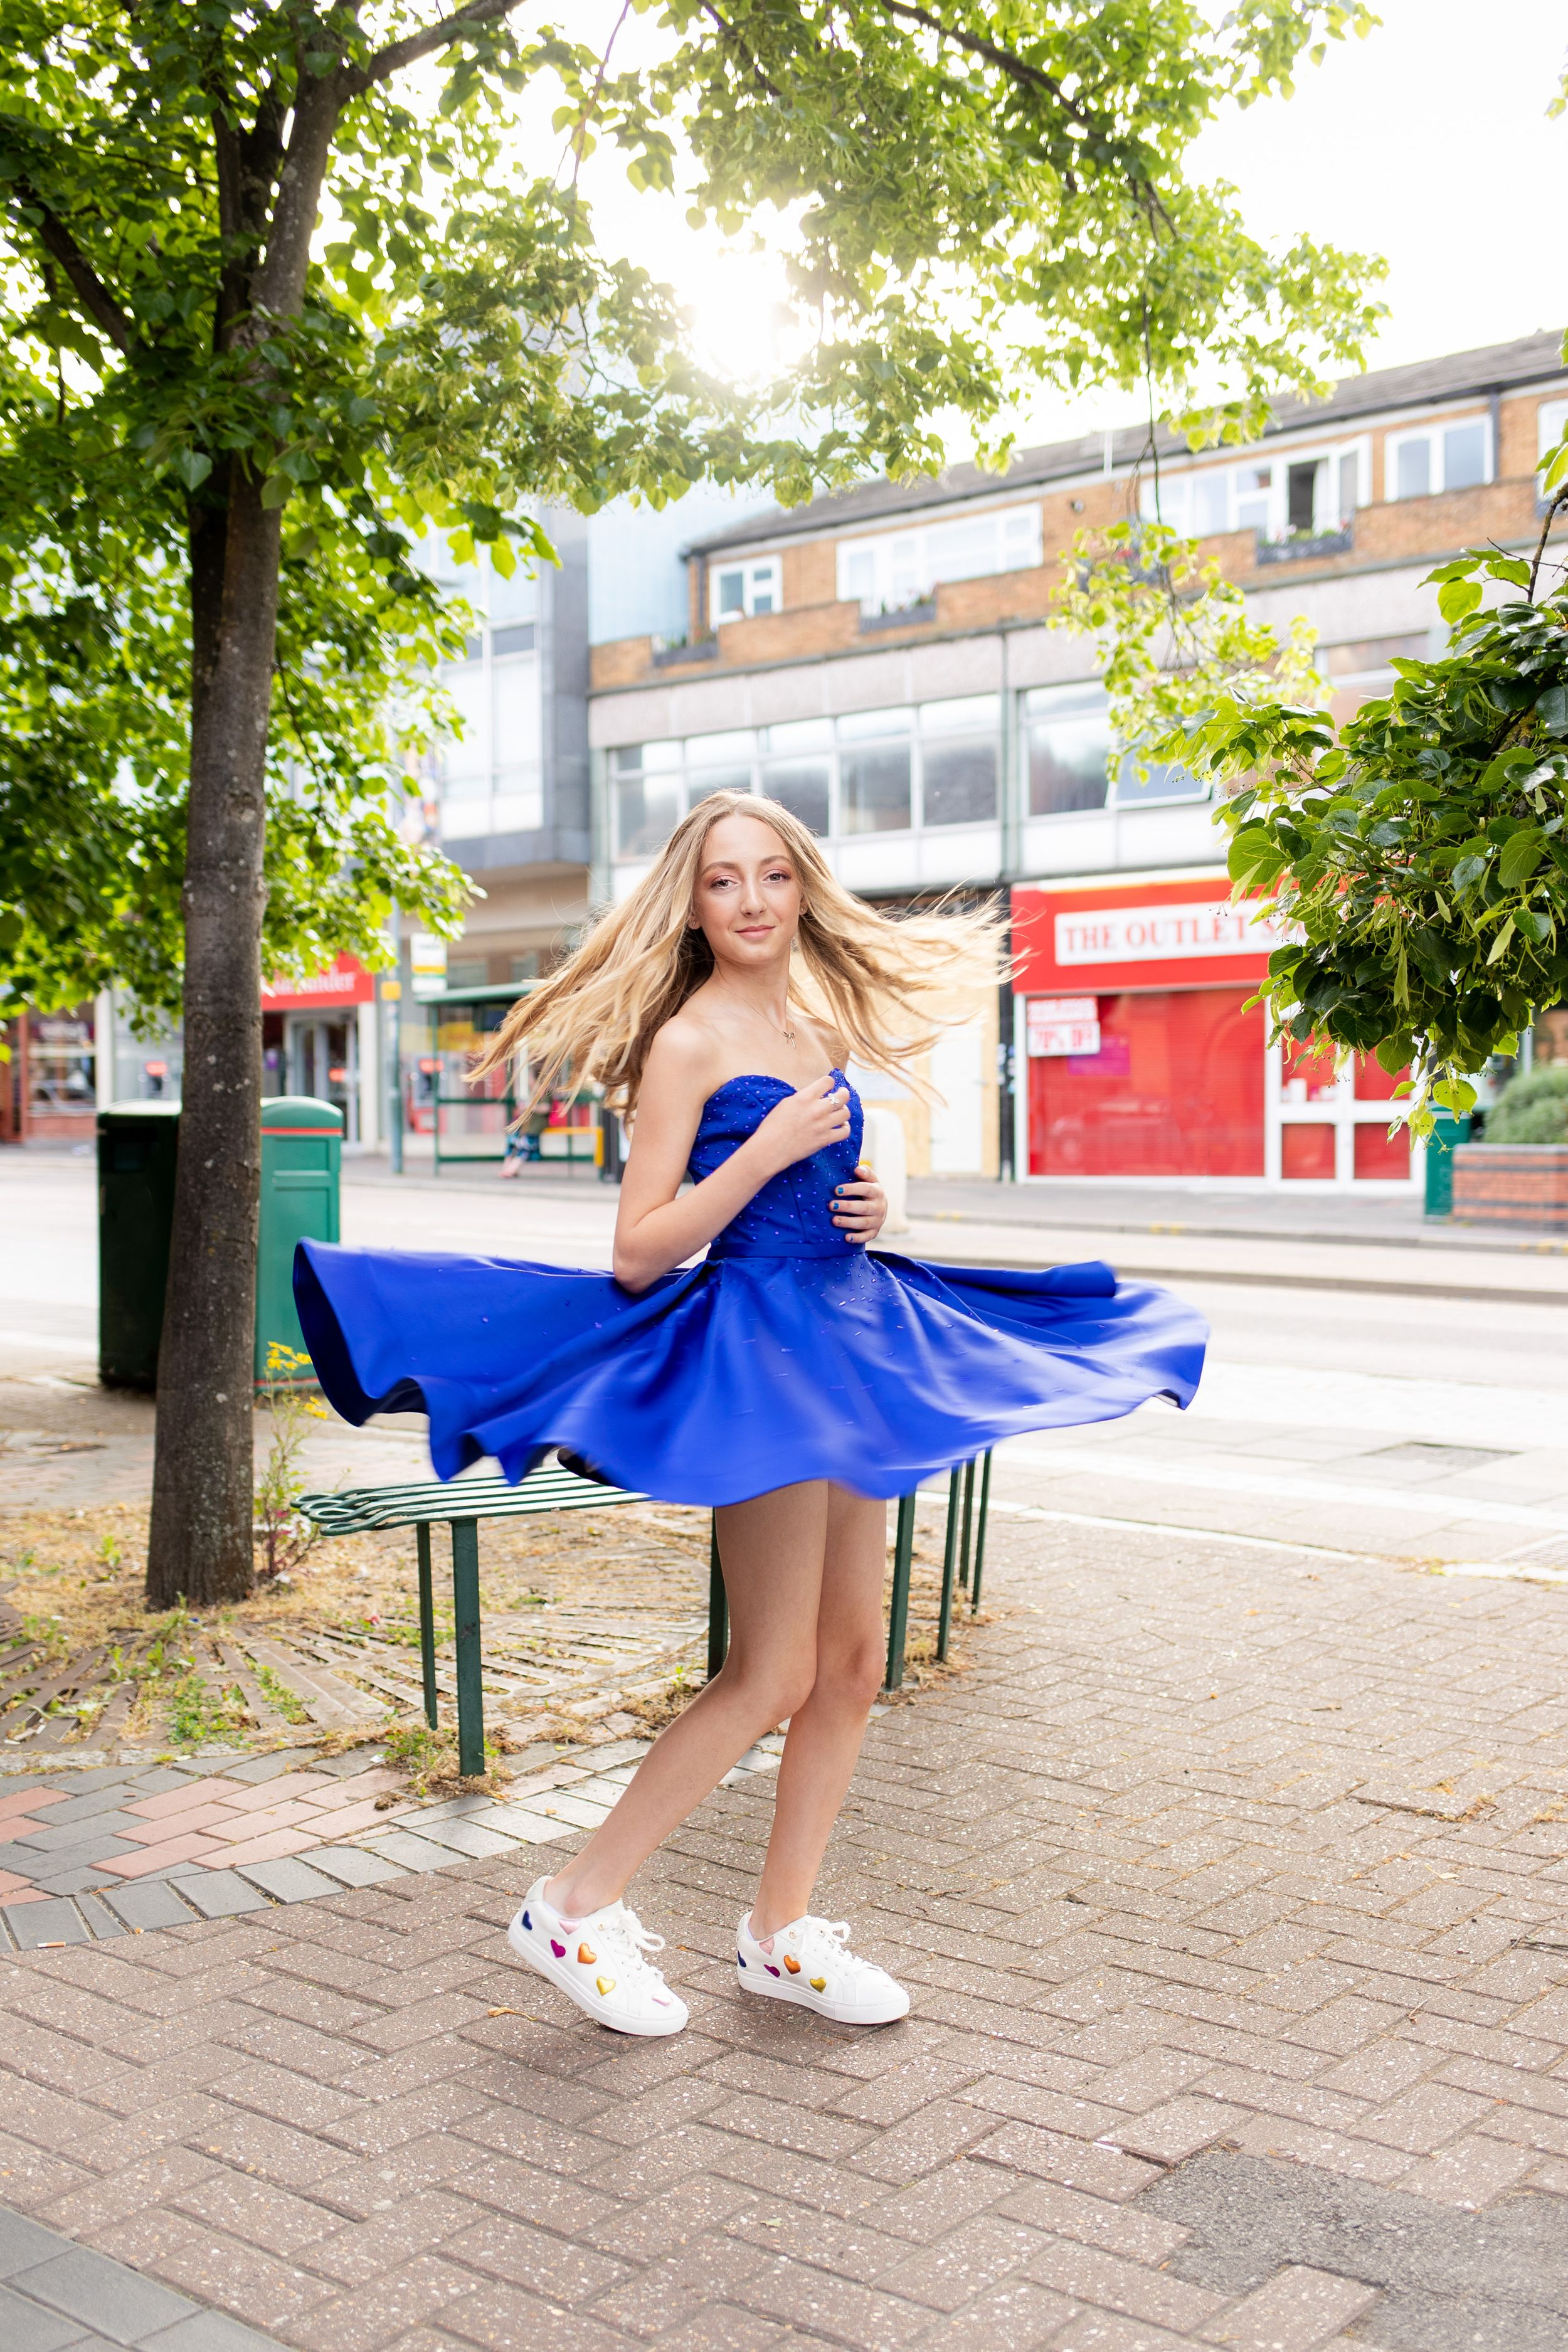 Bat Mitzvah portrait of a girl twirling her dress under a tree - Bat Mitzvah Photography